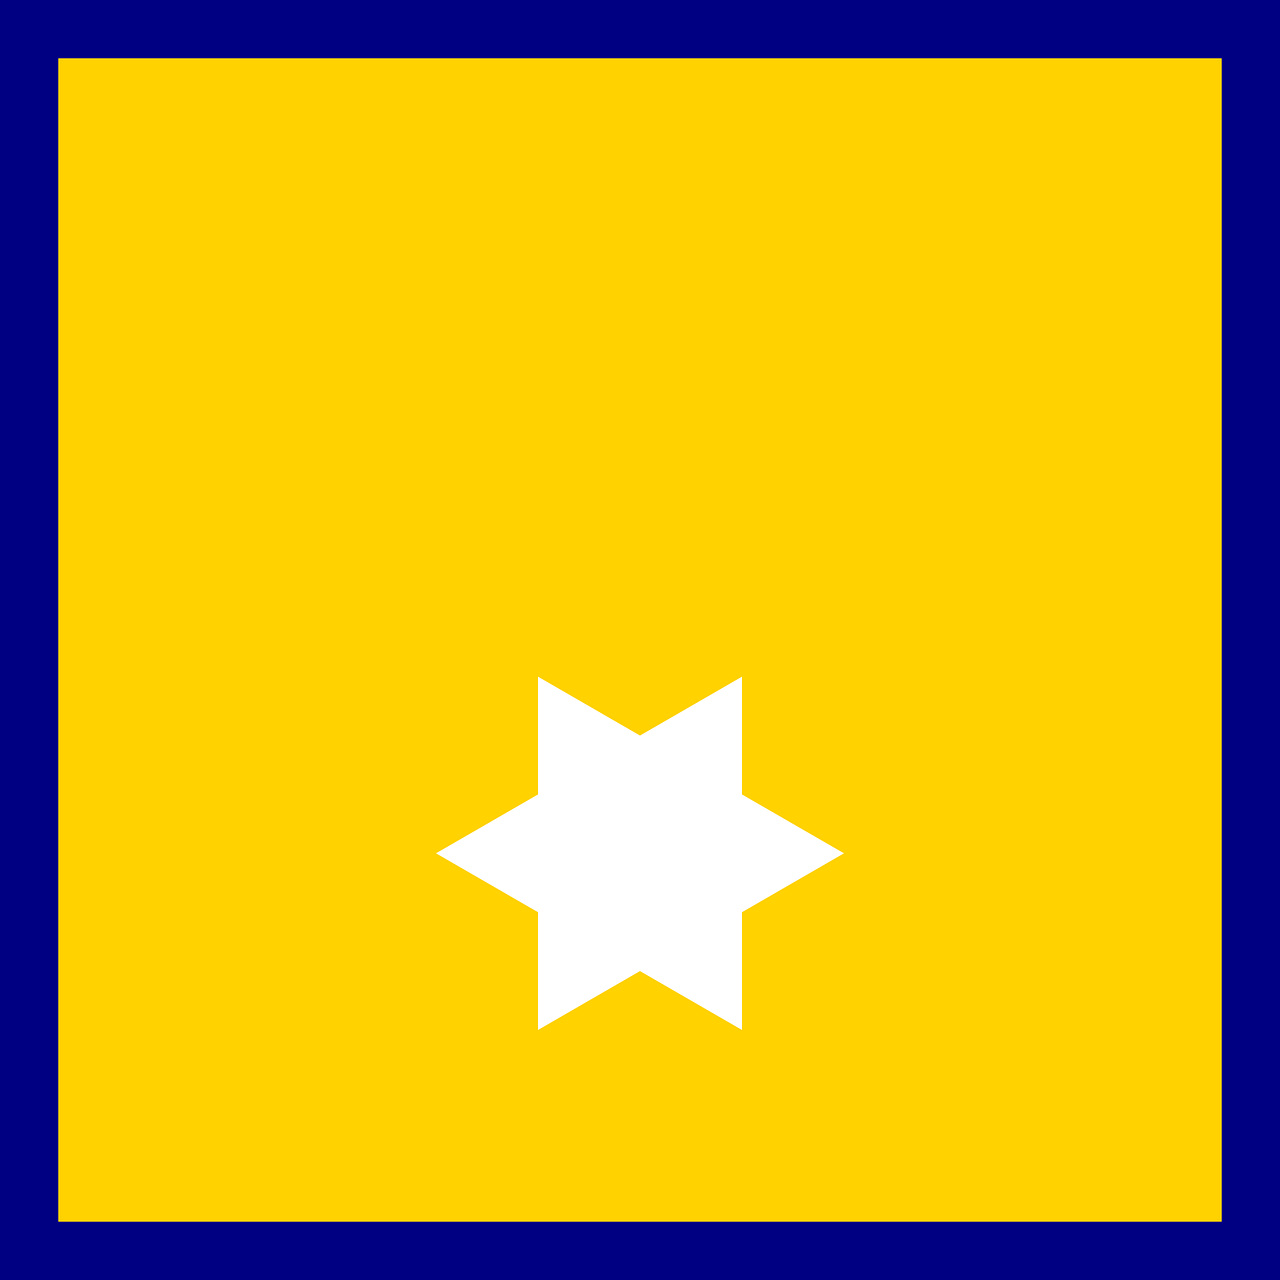 star flag yellow free photo